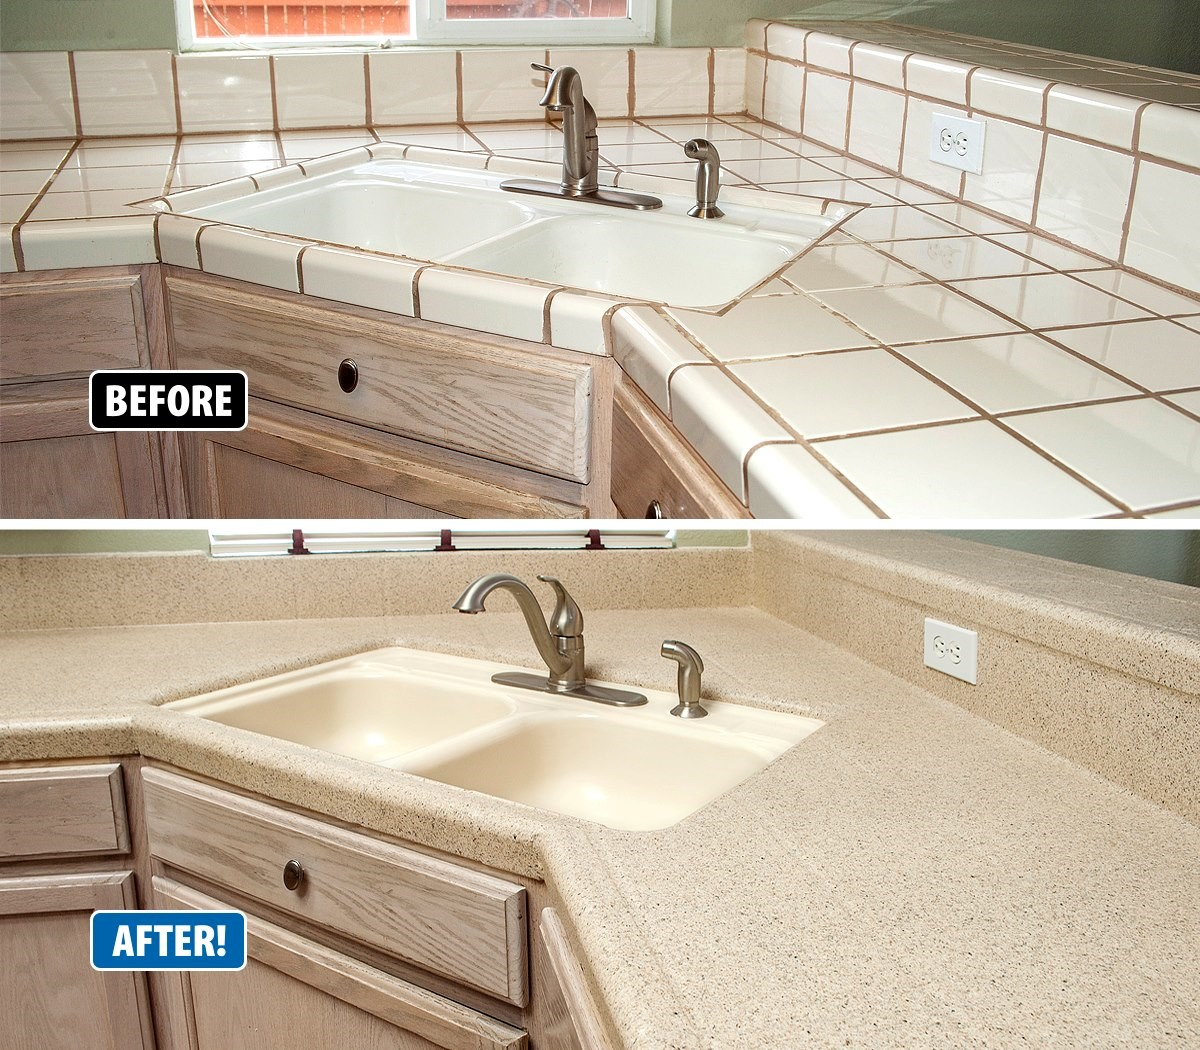 refinishing kitchen countertops tuscan curtains valances countertop revitalizes outdated kitchens